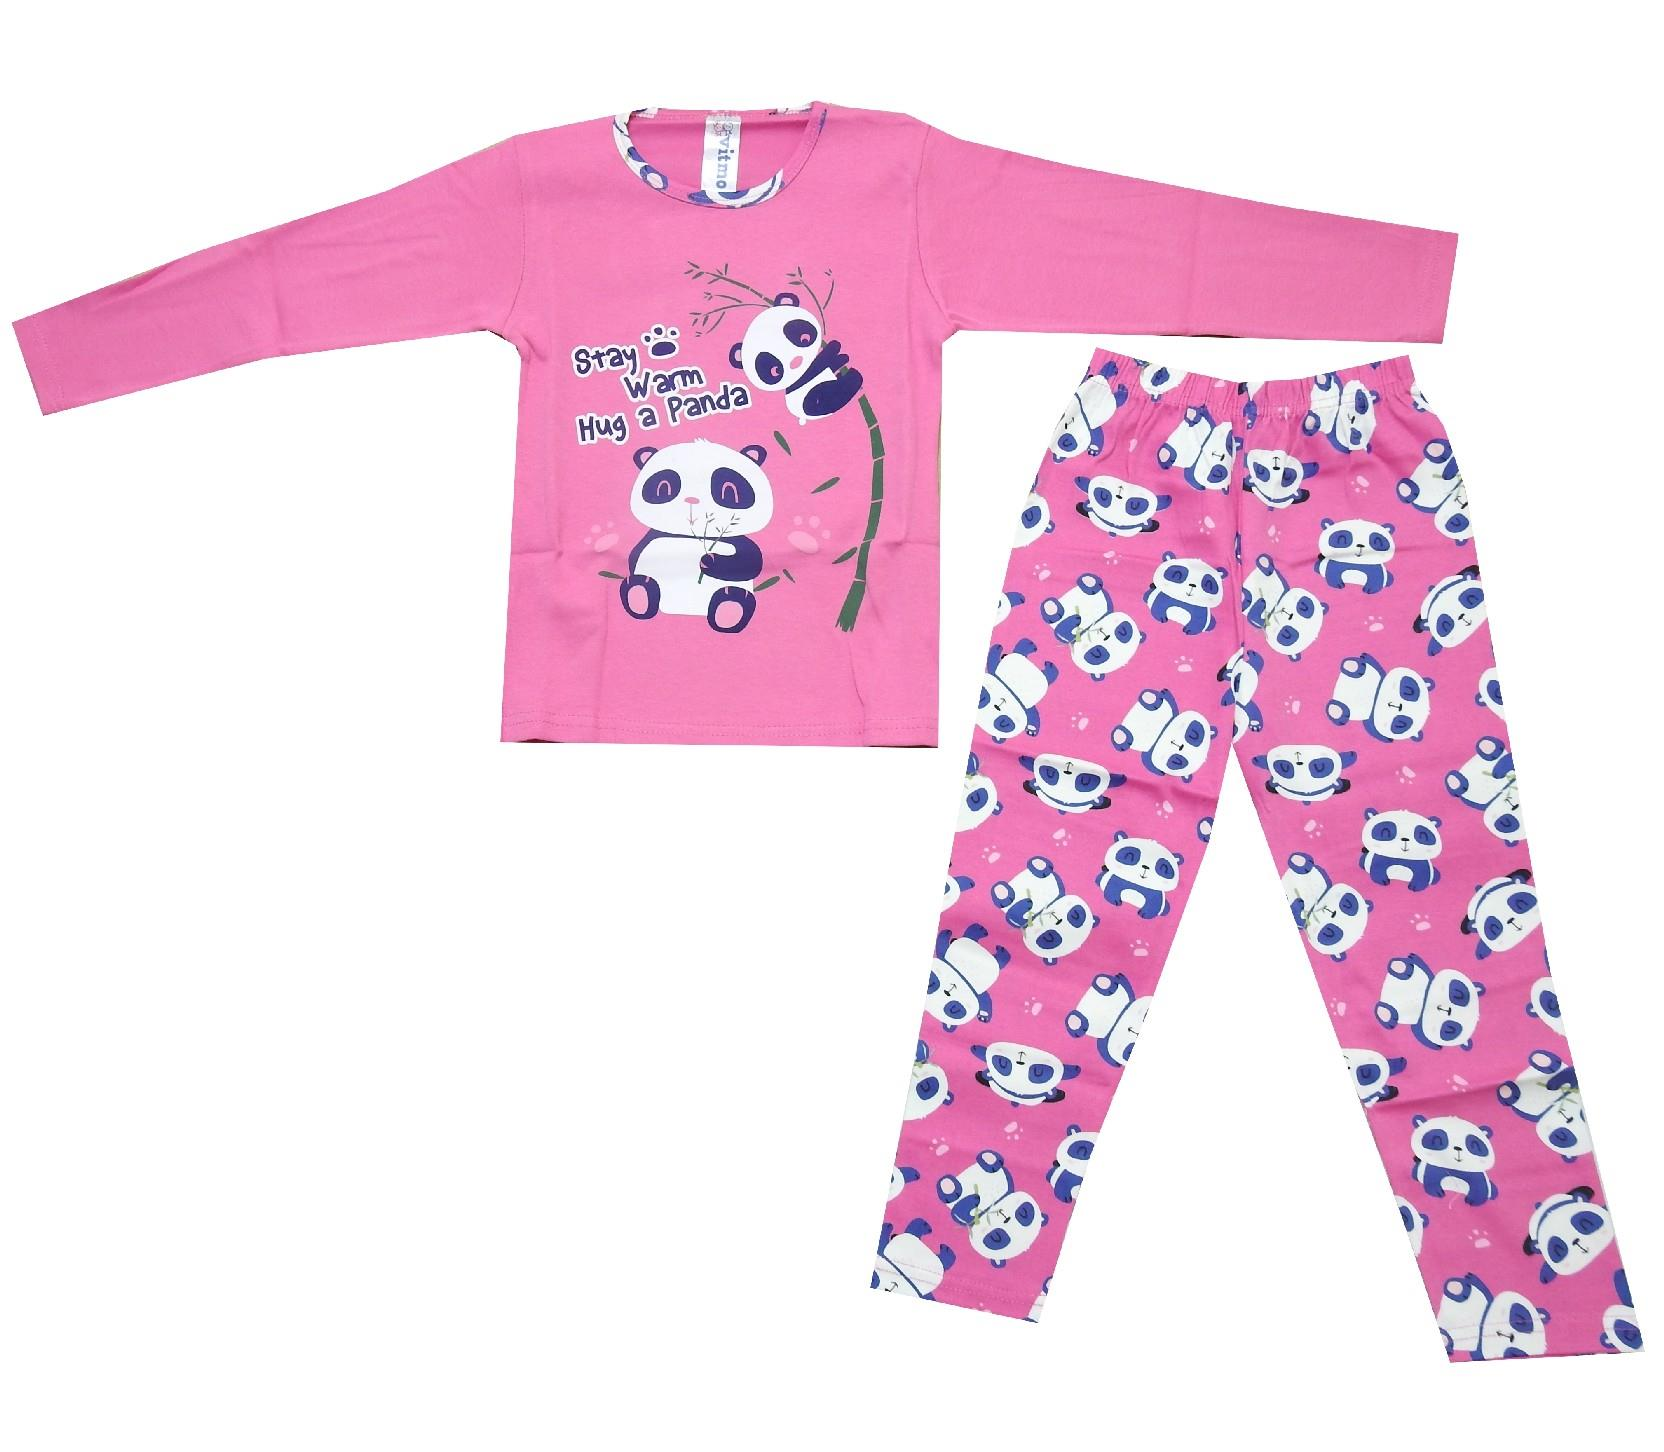 5096 Wholesale panda printed pyjamas for baby girl (7-8-9 age)